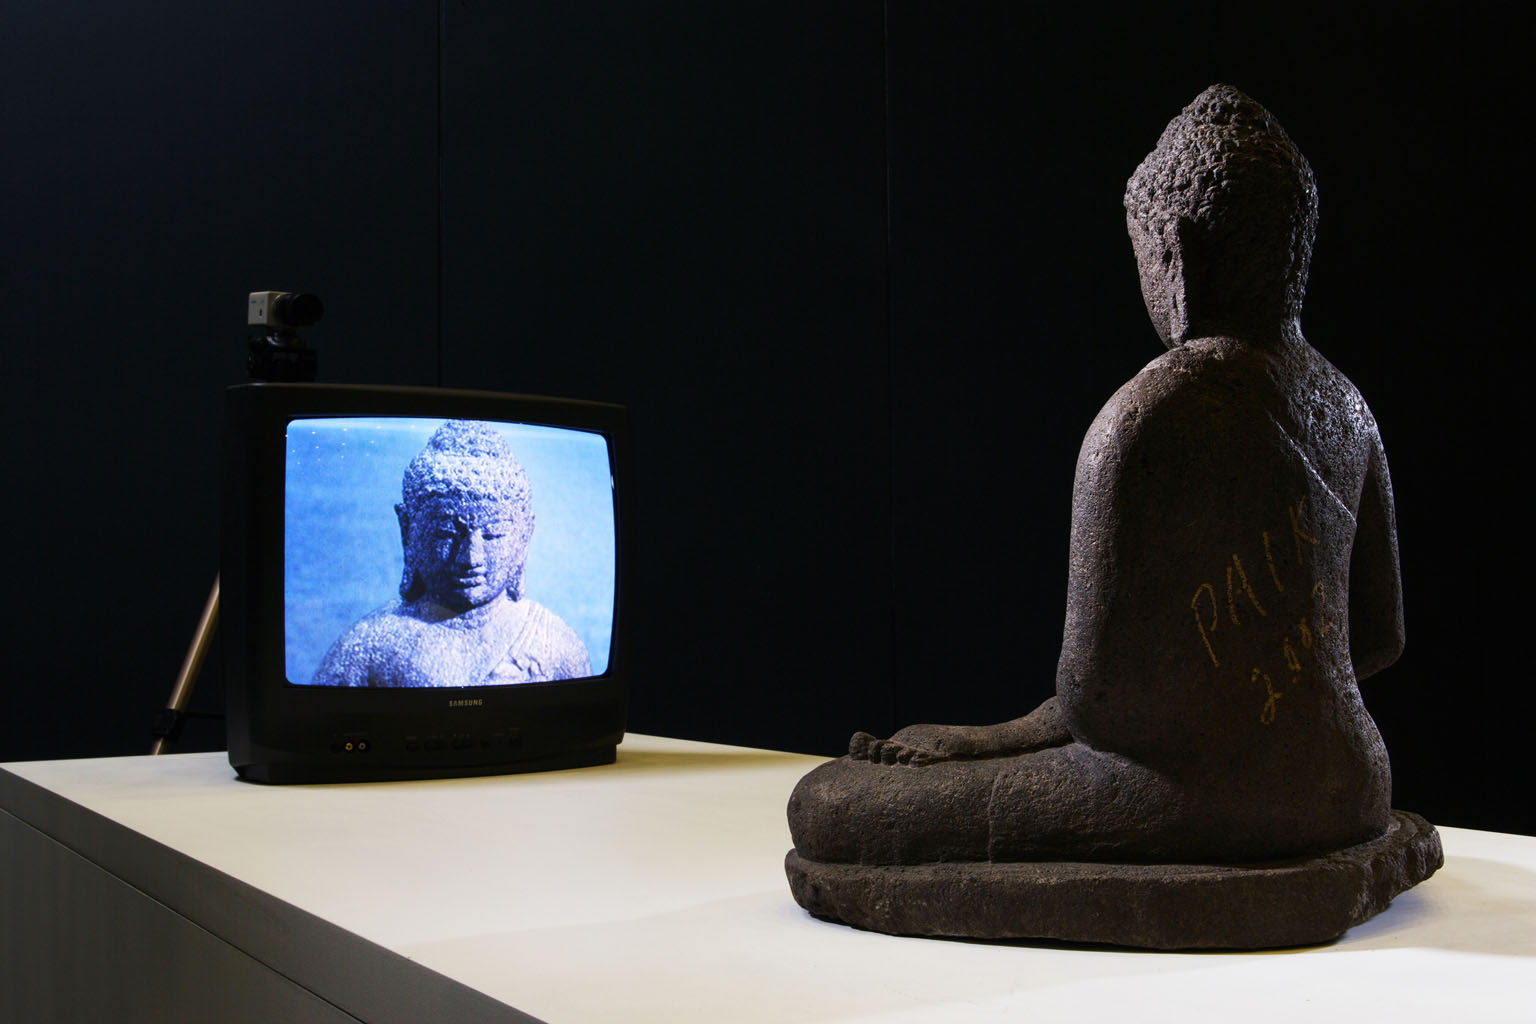 Nam June Paik, TV Buddha, 2002